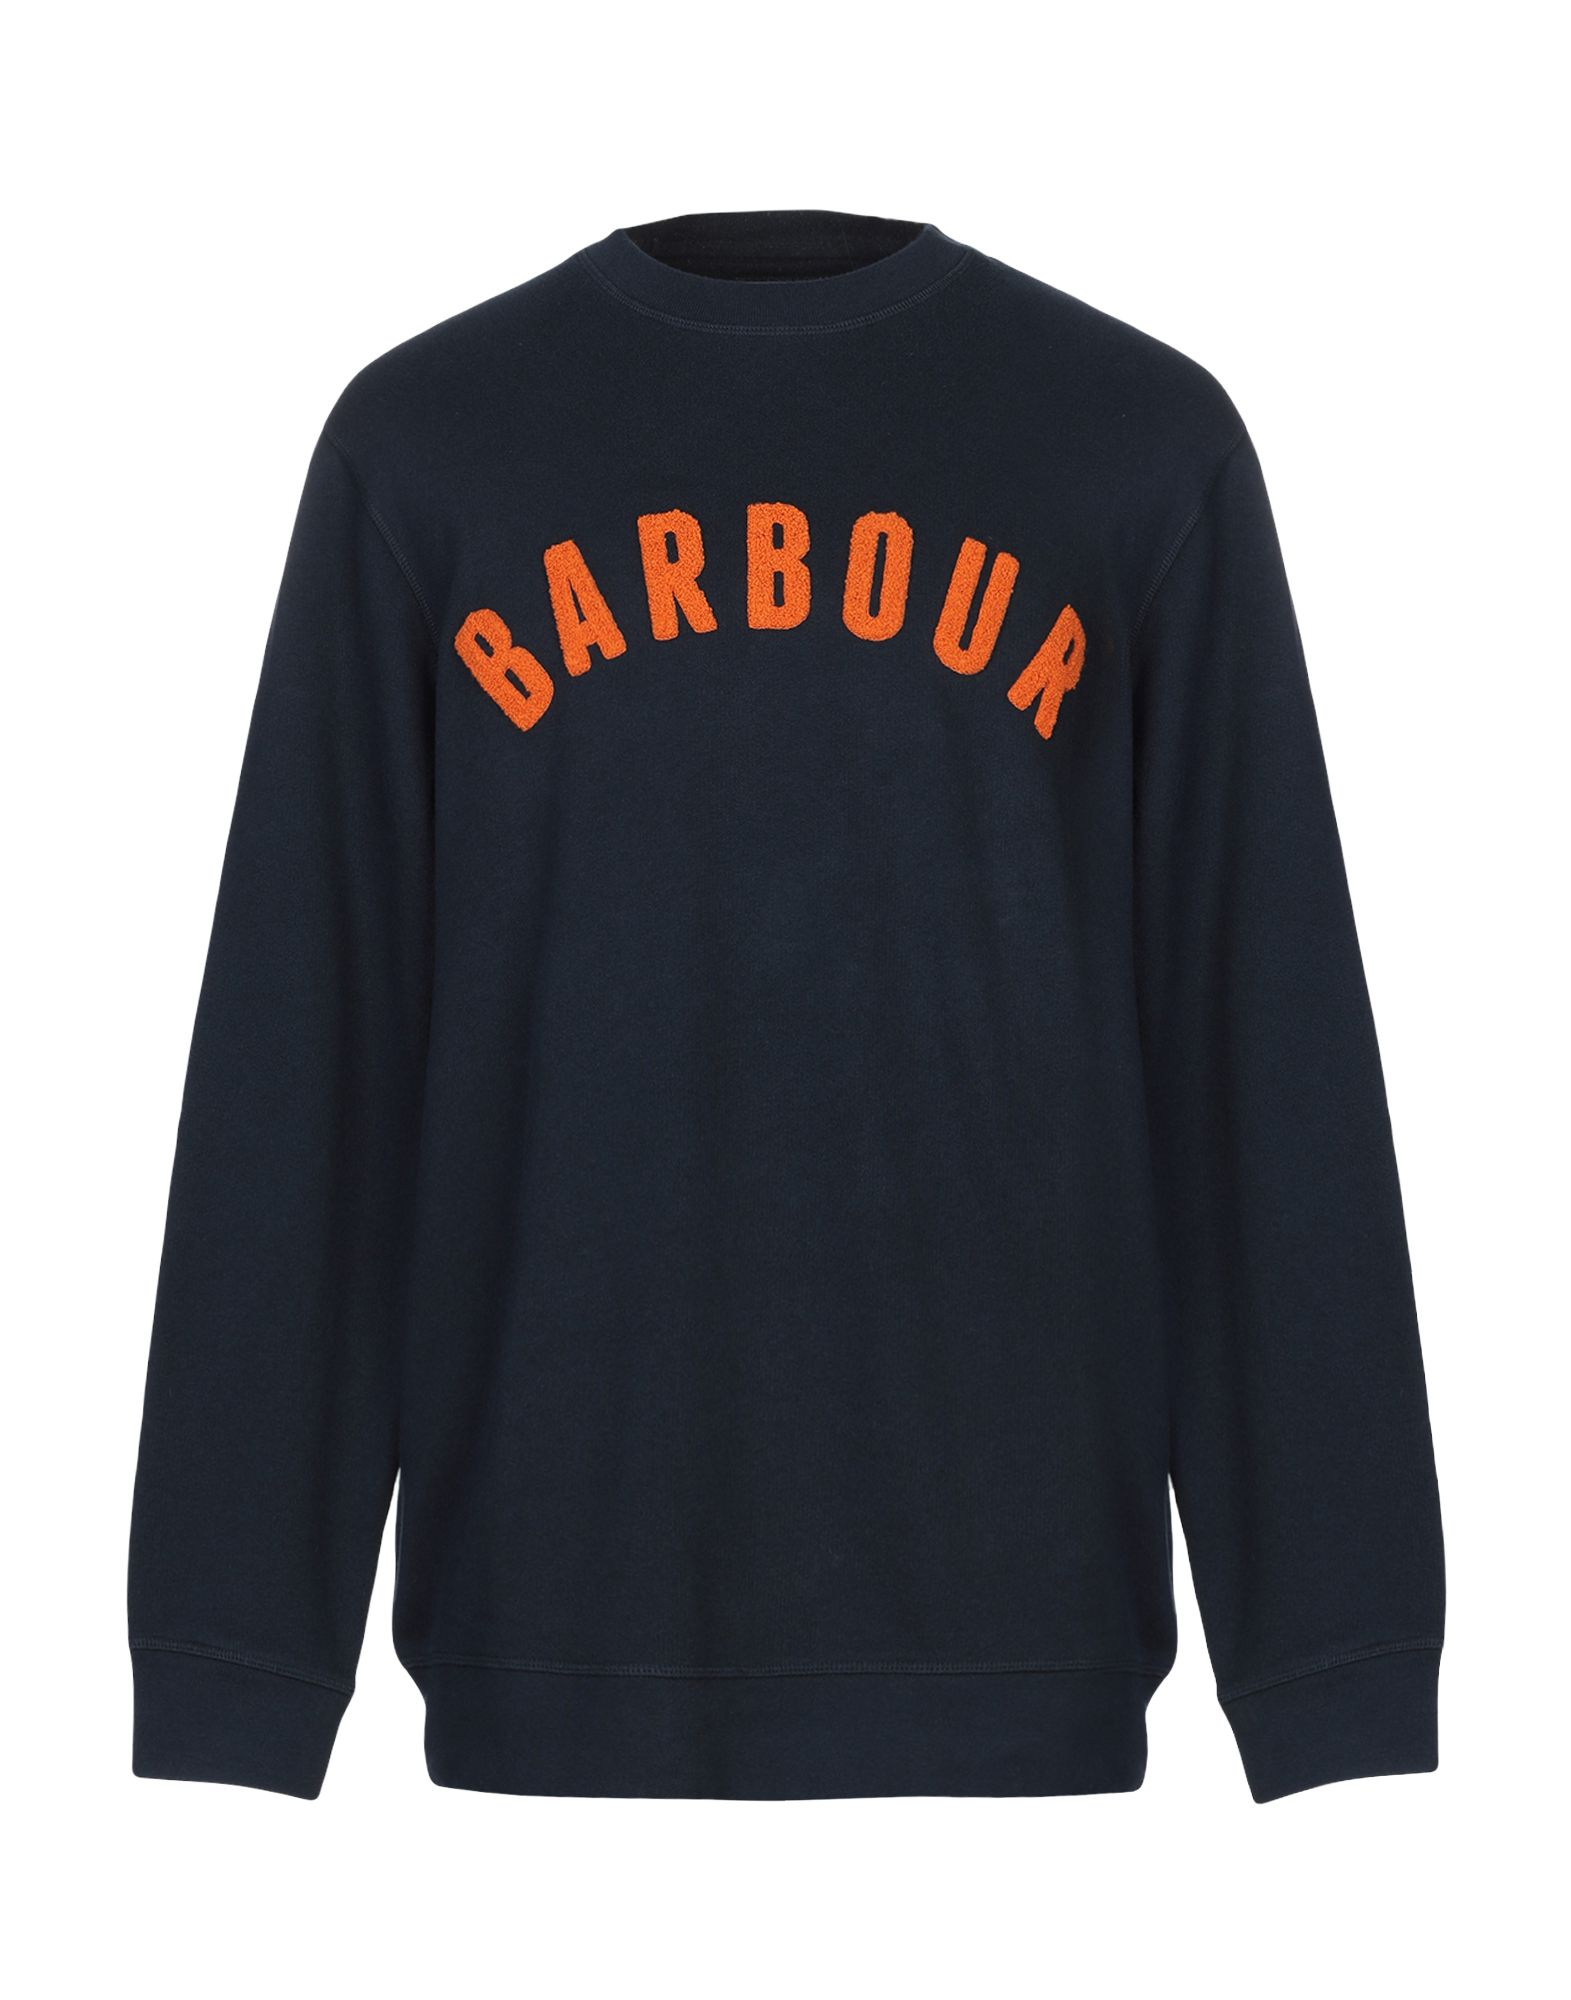 BARBOUR Толстовка barbour mml0851 gy52